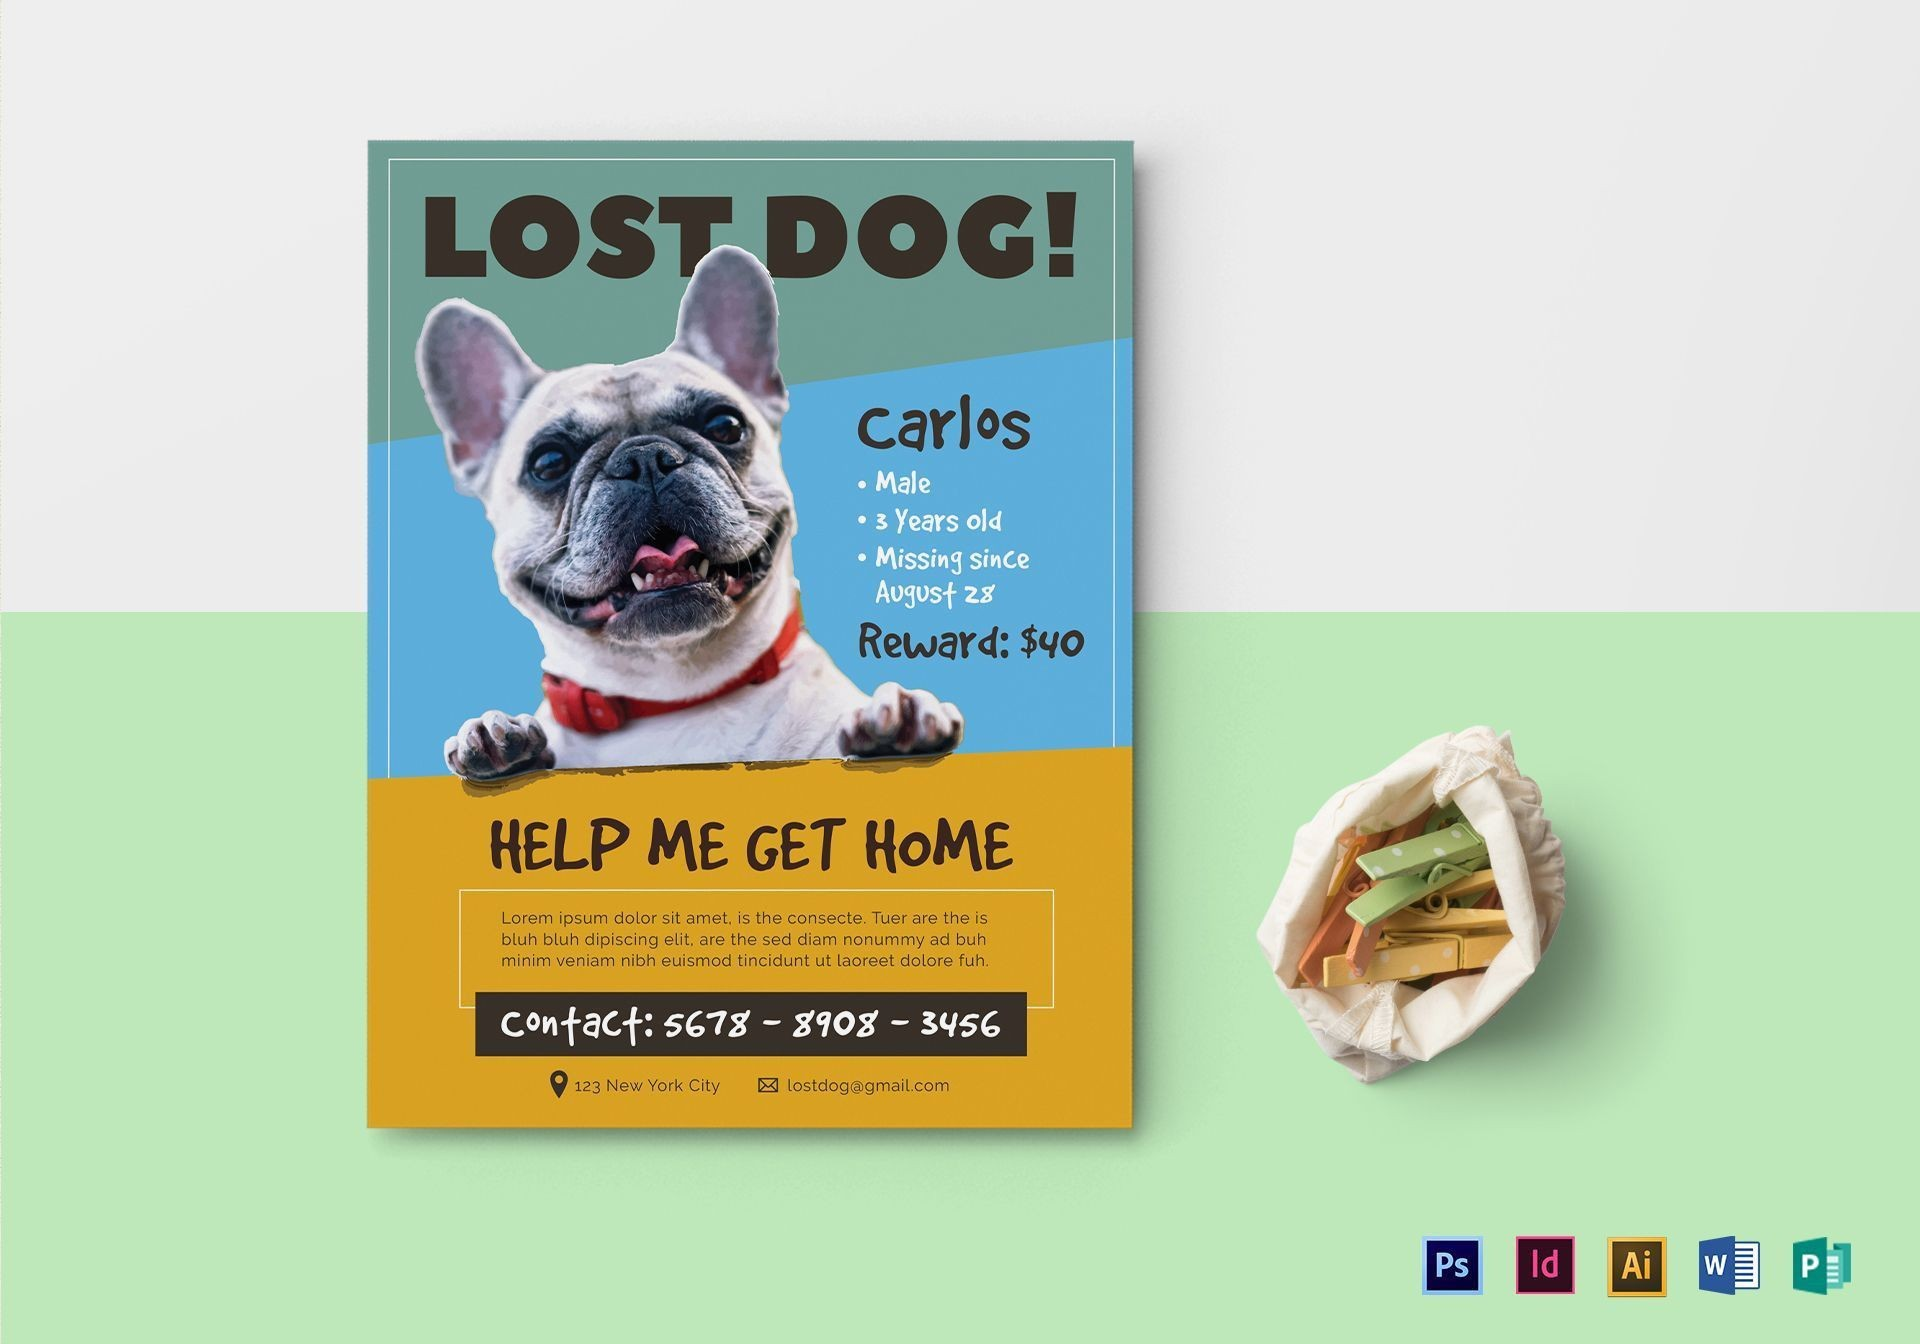 002 Surprising Missing Dog Flyer Template Concept  Lost Poster1920